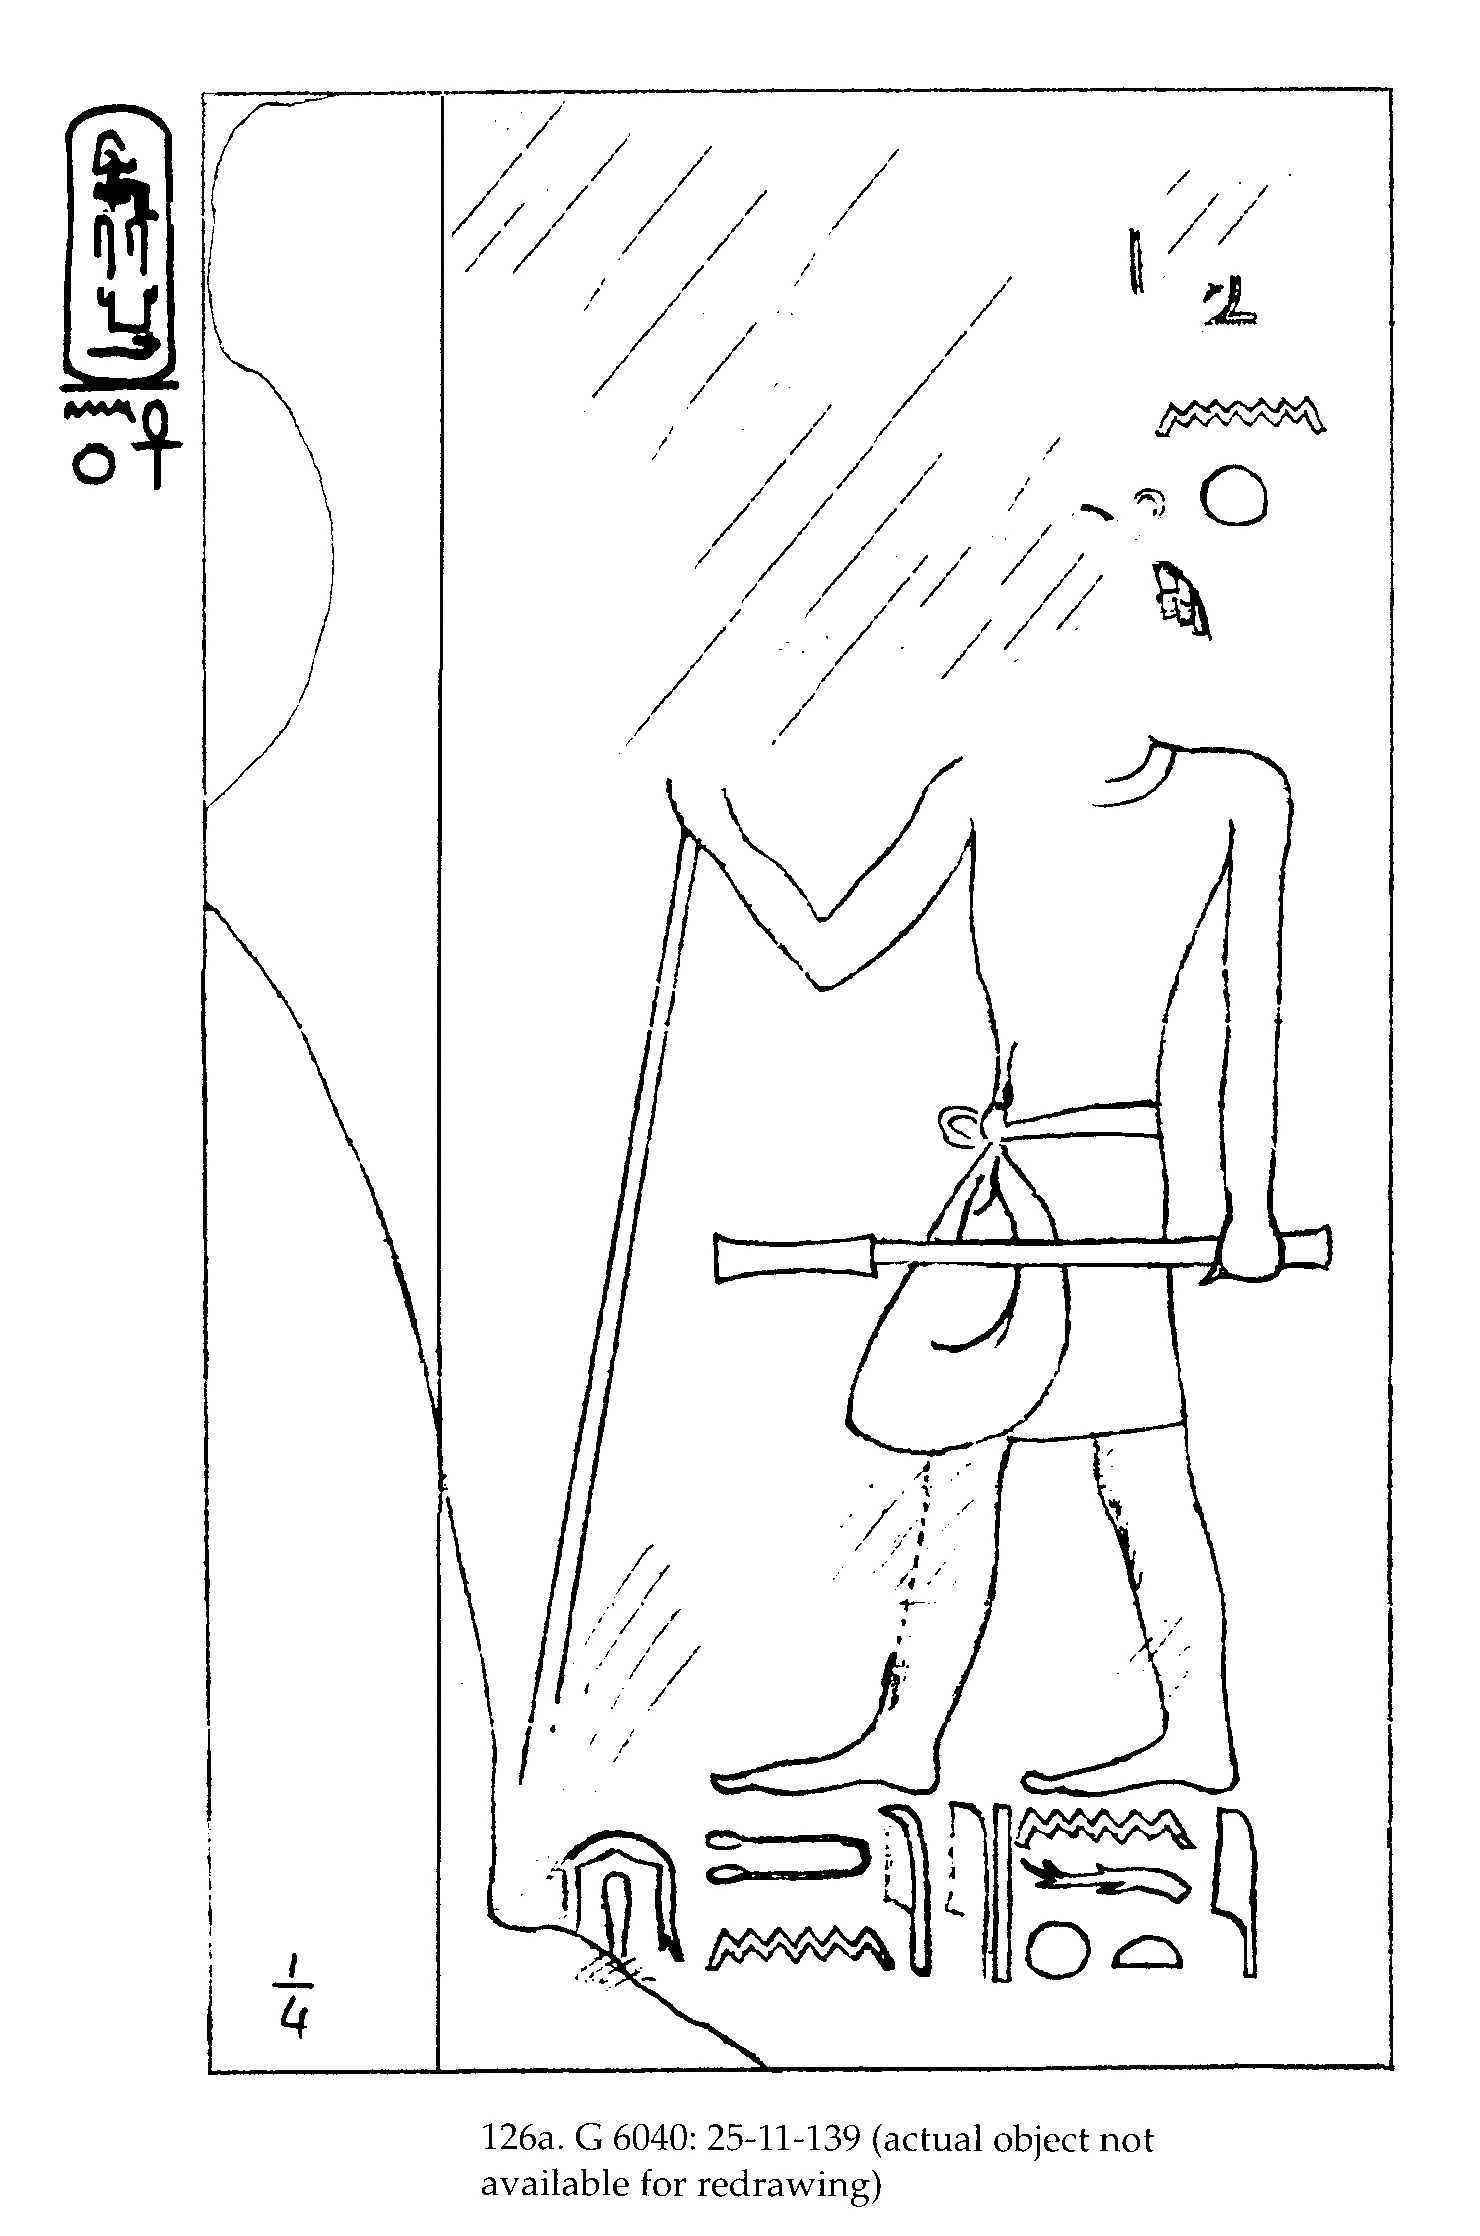 Drawings: G 6040: relief fragment